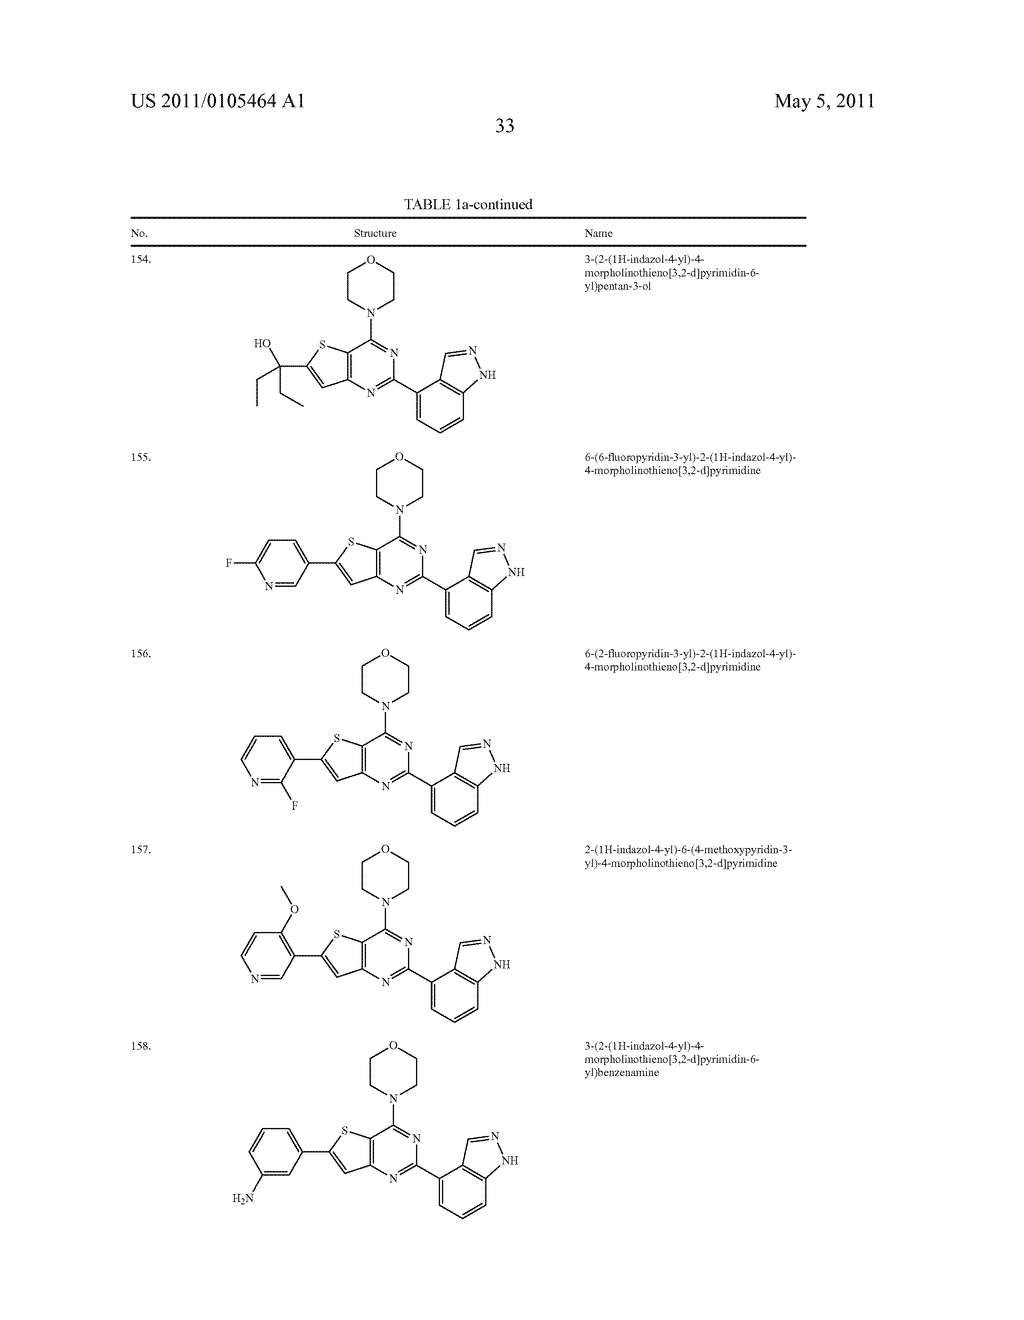 PHOSPHOINOSITIDE 3-KINASE INHIBITOR COMPOUNDS AND METHODS OF USE - diagram, schematic, and image 34